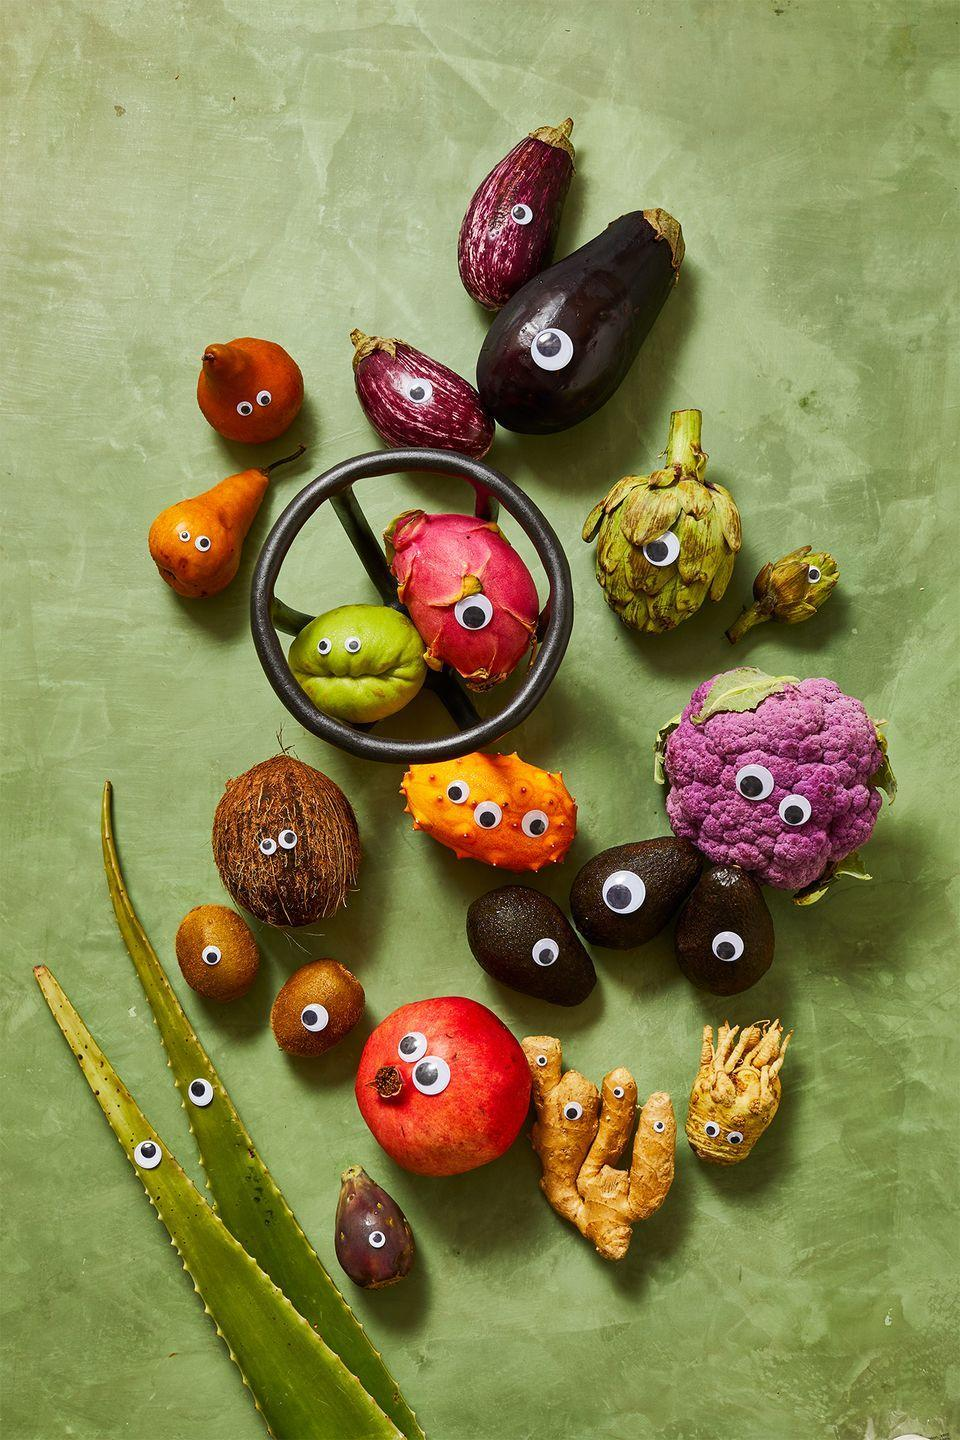 "<p>Add plastic googly eyes to any veggie or fruit to make it a monster with a dot of royal frosting. Here, we used squashes, ginger, cauliflower, artichokes, eggplants as well as fruits like pomegranate, pears, avocados, kiwis, coconuts, chayote and more. Display on your table or in a bowl, <a href=""https://virginiasin.com/products/moth-fruit-bowl?variant=27925911797865"" rel=""nofollow noopener"" target=""_blank"" data-ylk=""slk:like this one by Sin"" class=""link rapid-noclick-resp"">like this one by Sin</a>. </p>"